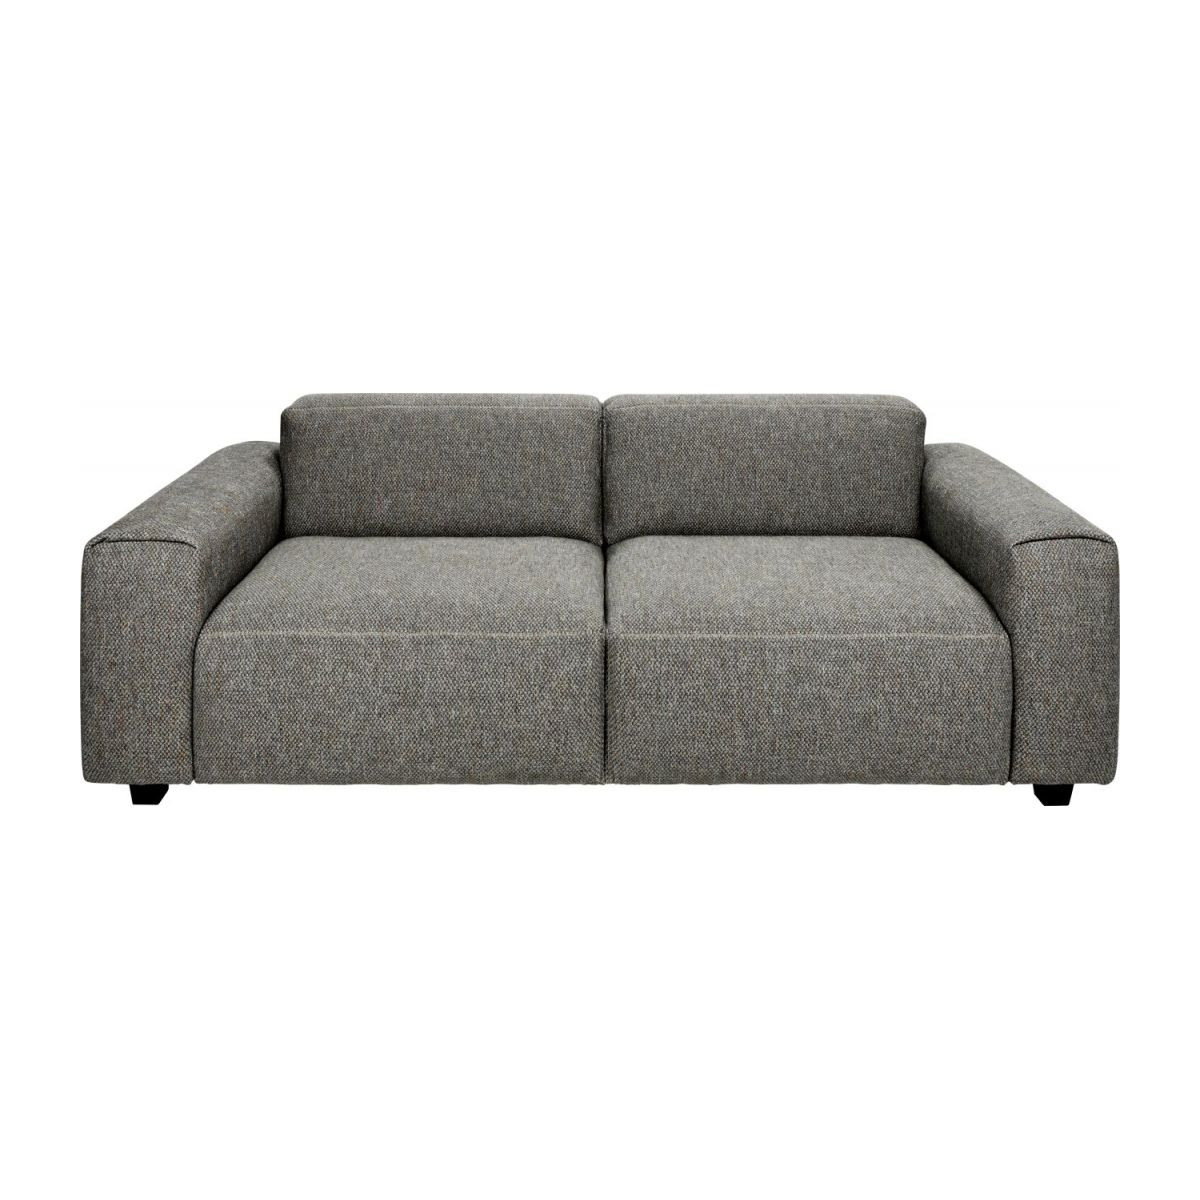 2-Sitzer Sofa aus Stoff Bellagio night black n°3